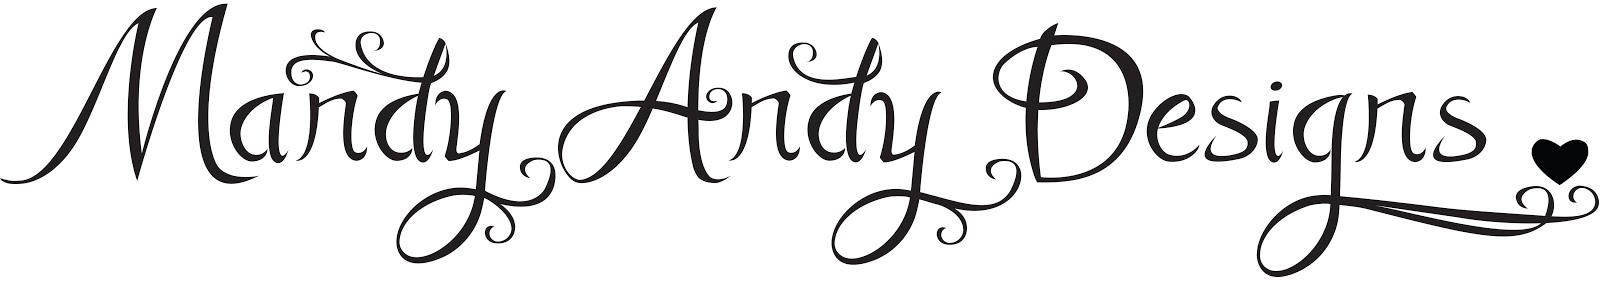 Mandy Andy Designs